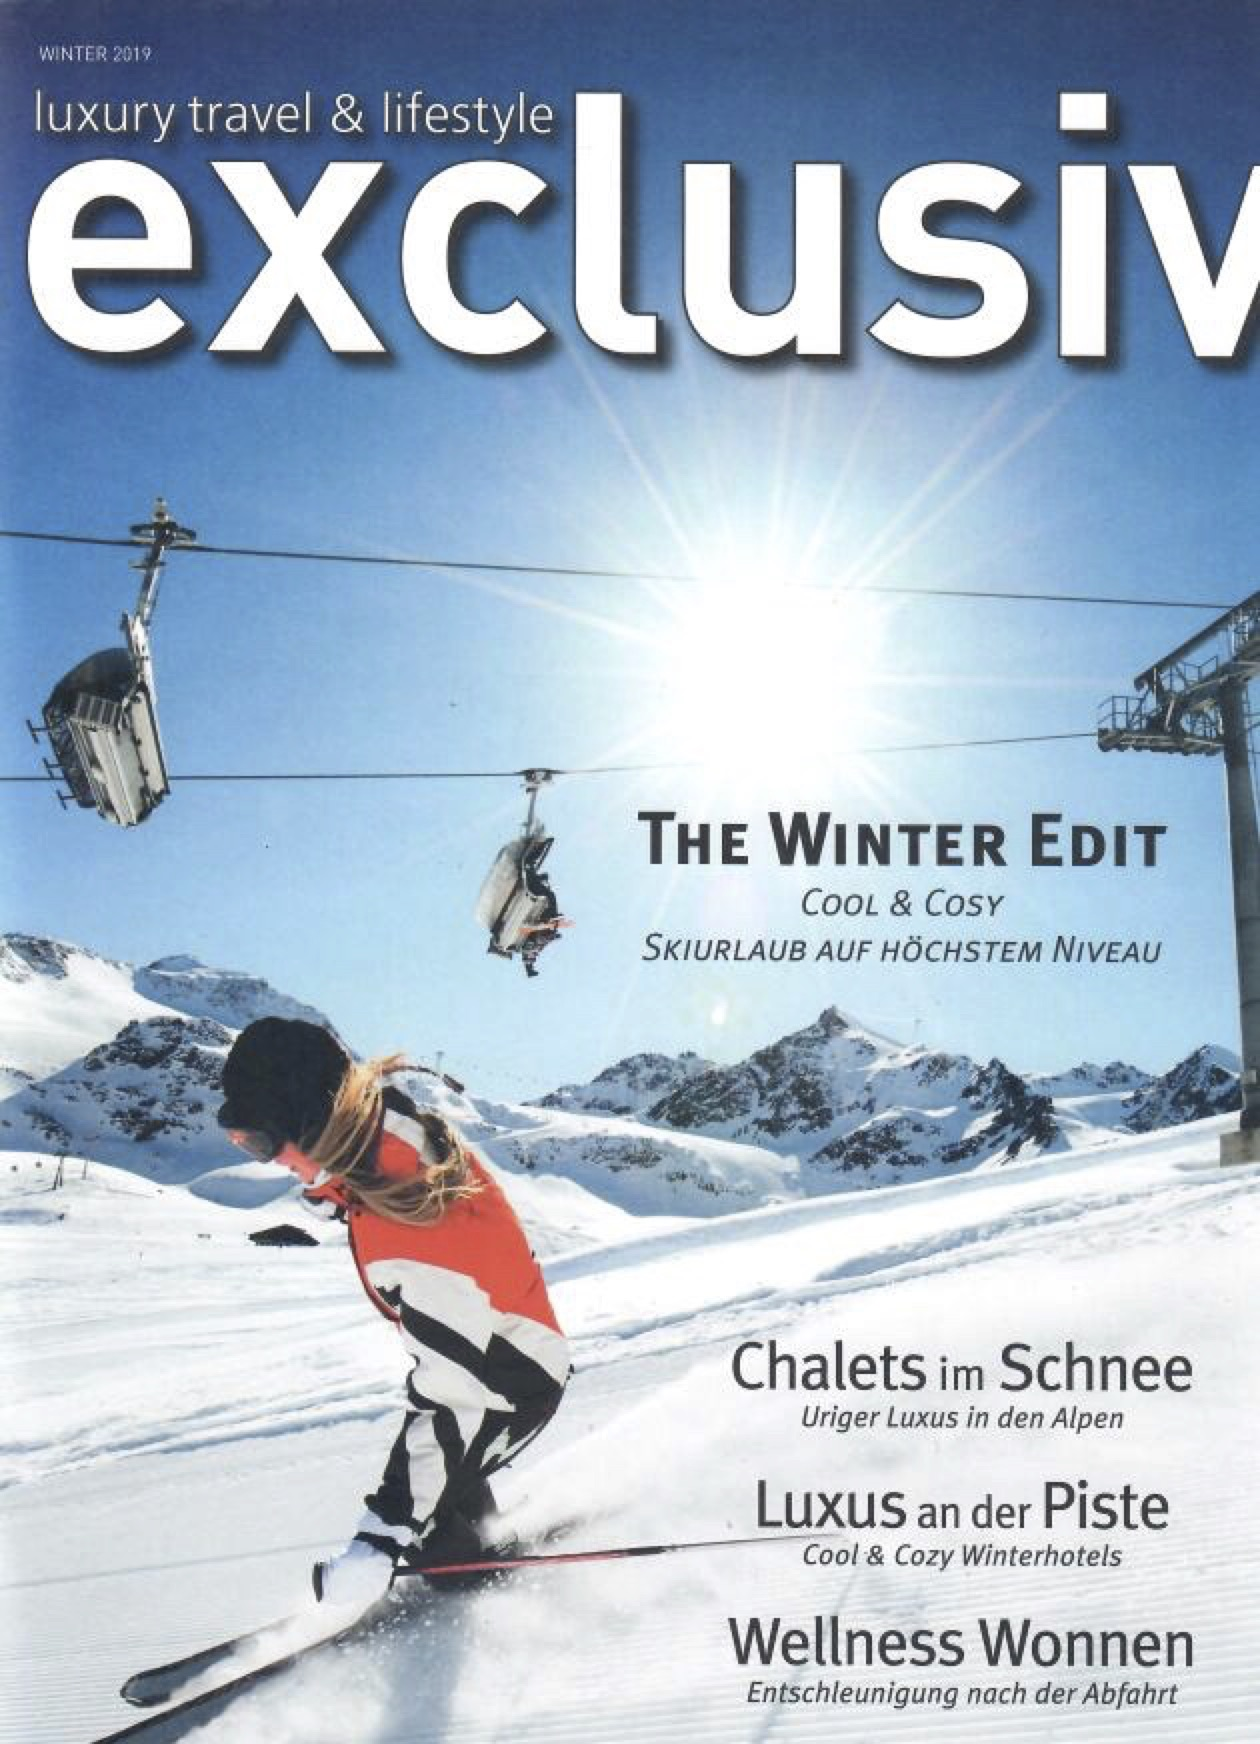 exklusiv luxury travel & lifestyle Winter 2019